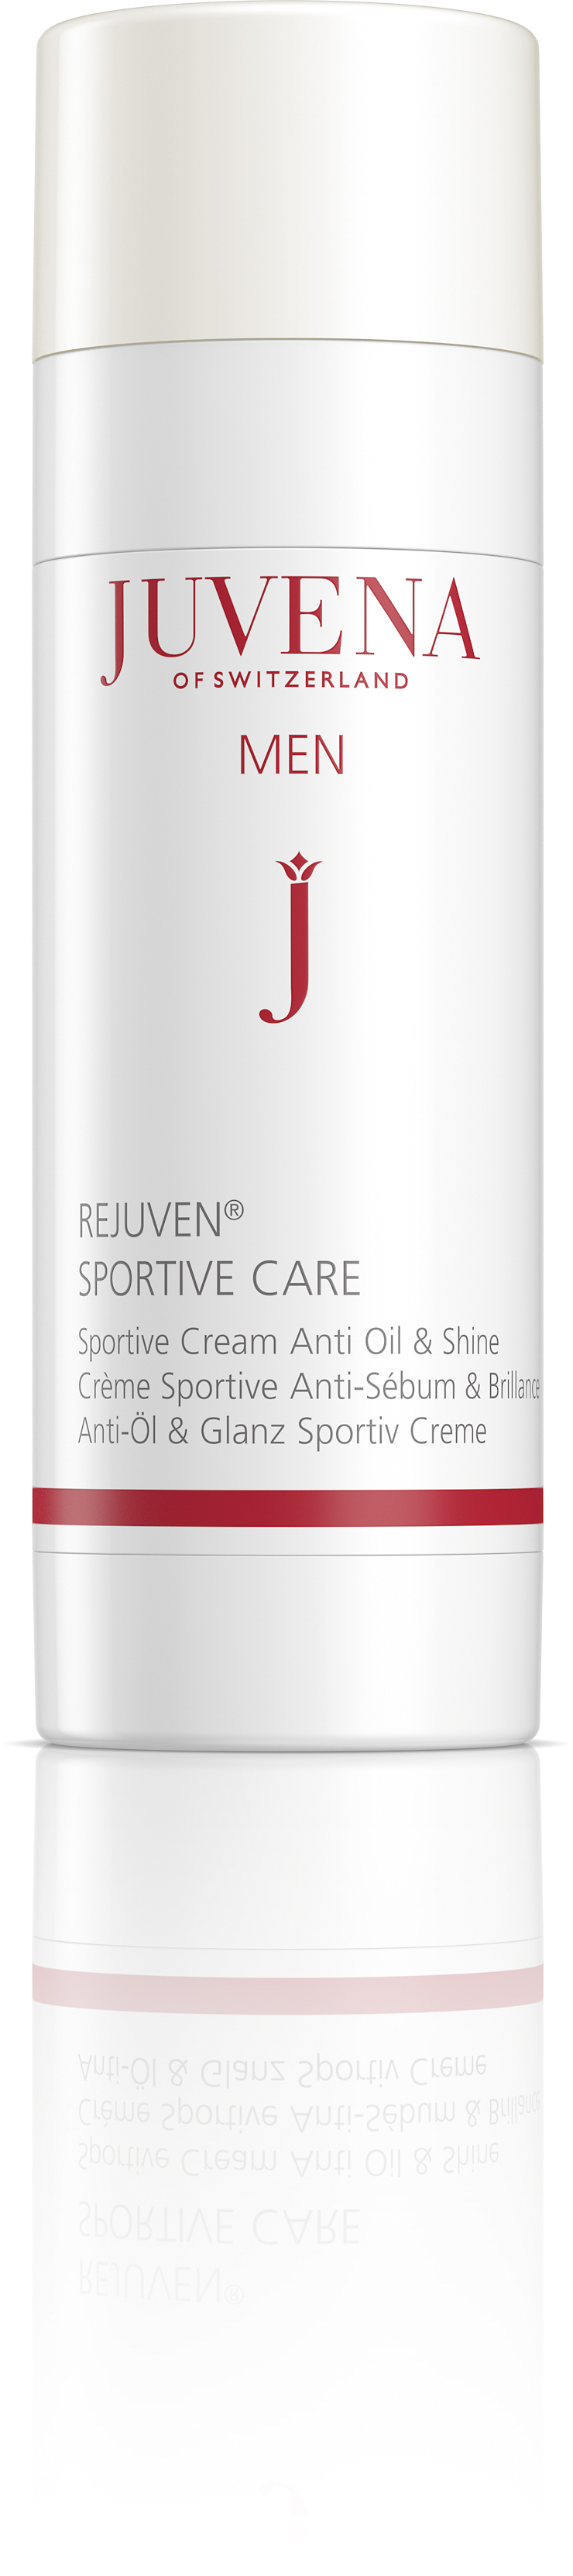 Juvena Rejuven Men Sportive Cr A Oil&Shine 50 ml